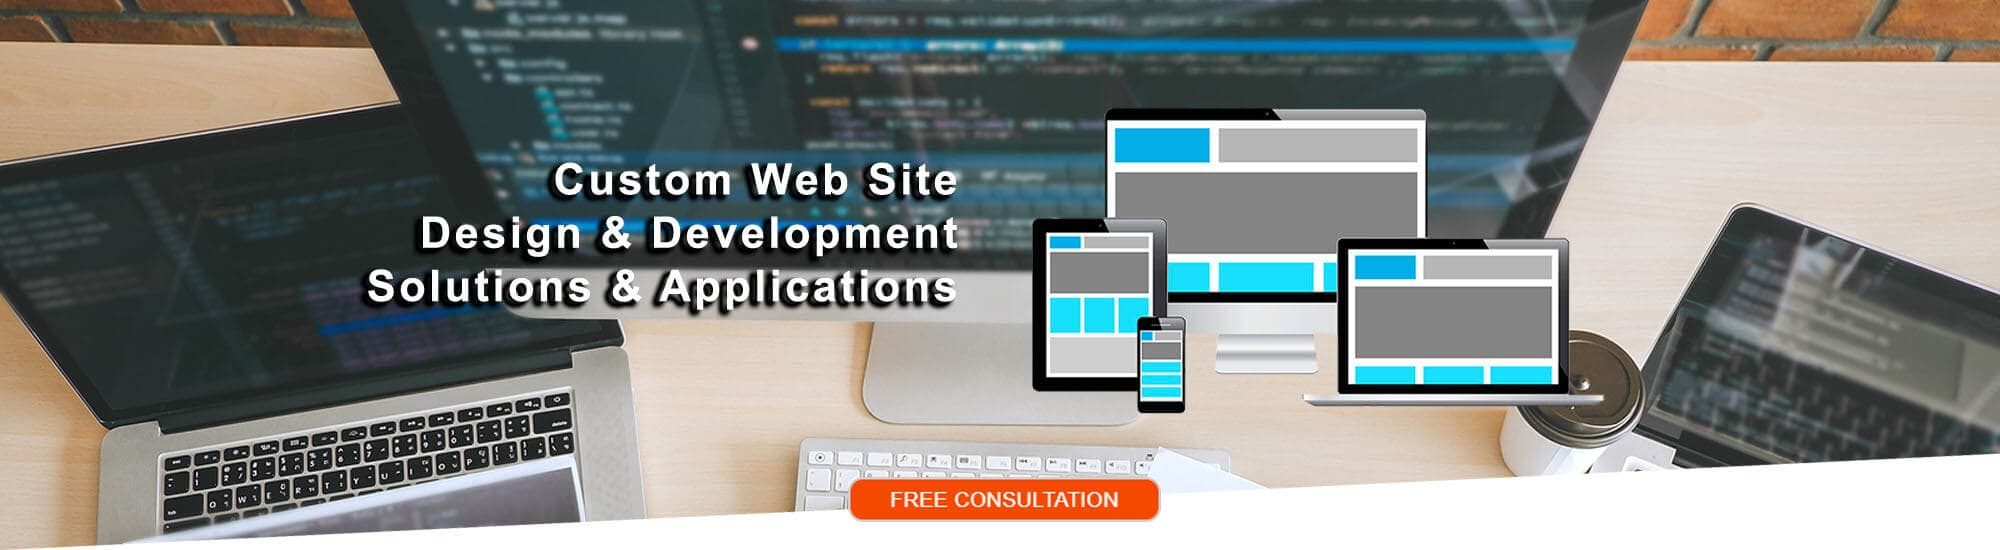 Custom Web Site Design & Development, Solutions & Applications